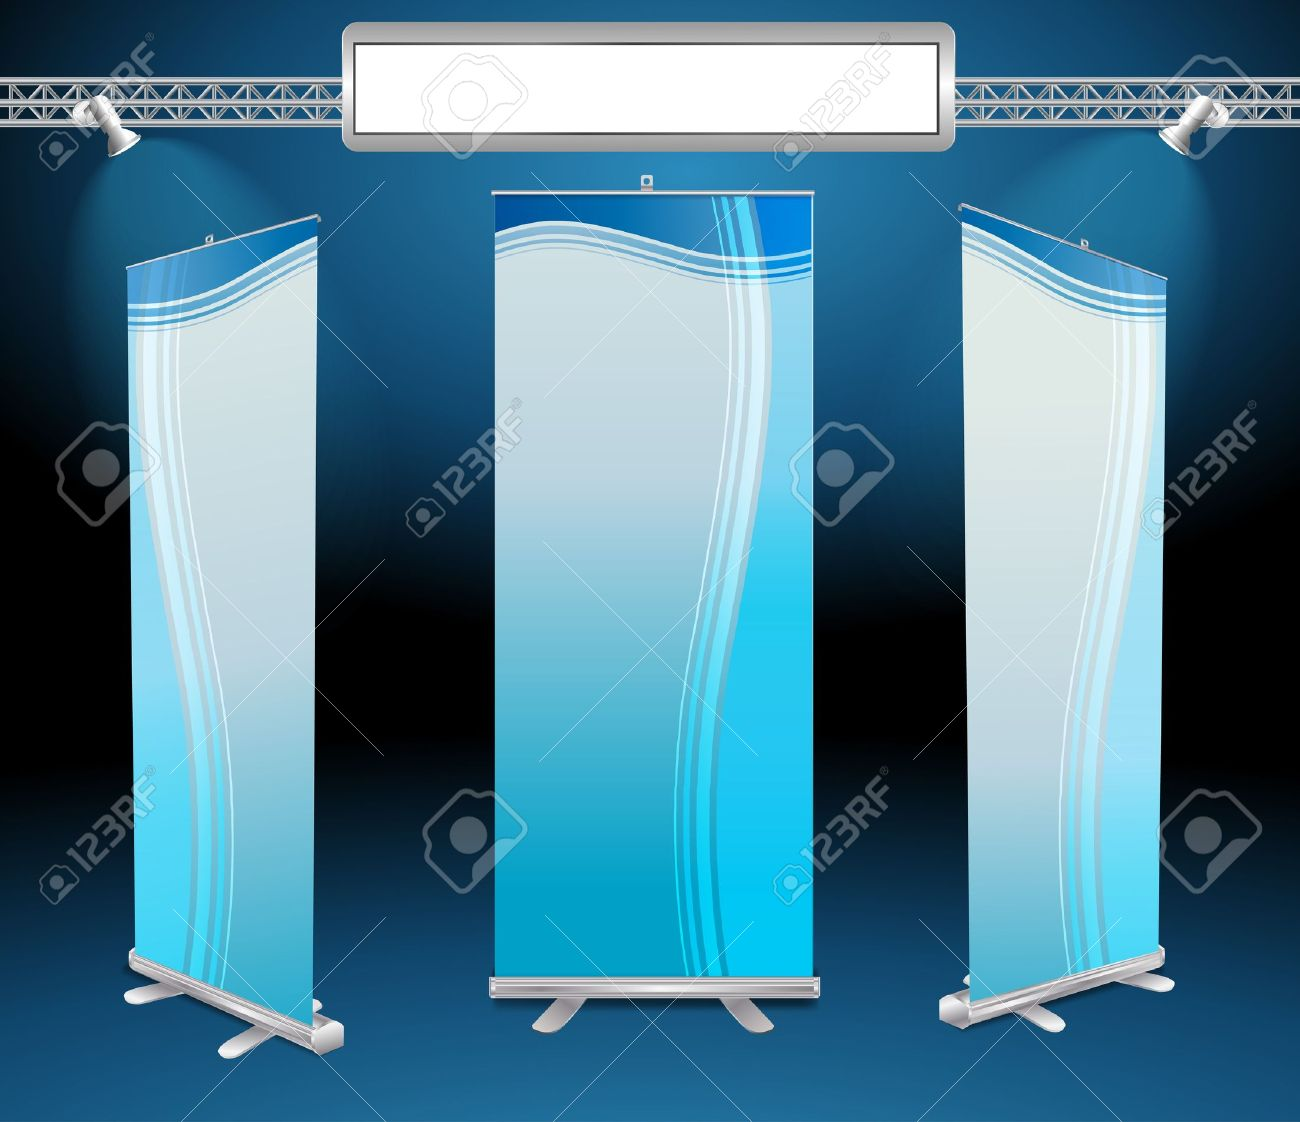 roll up banner display Stock Vector - 15128791